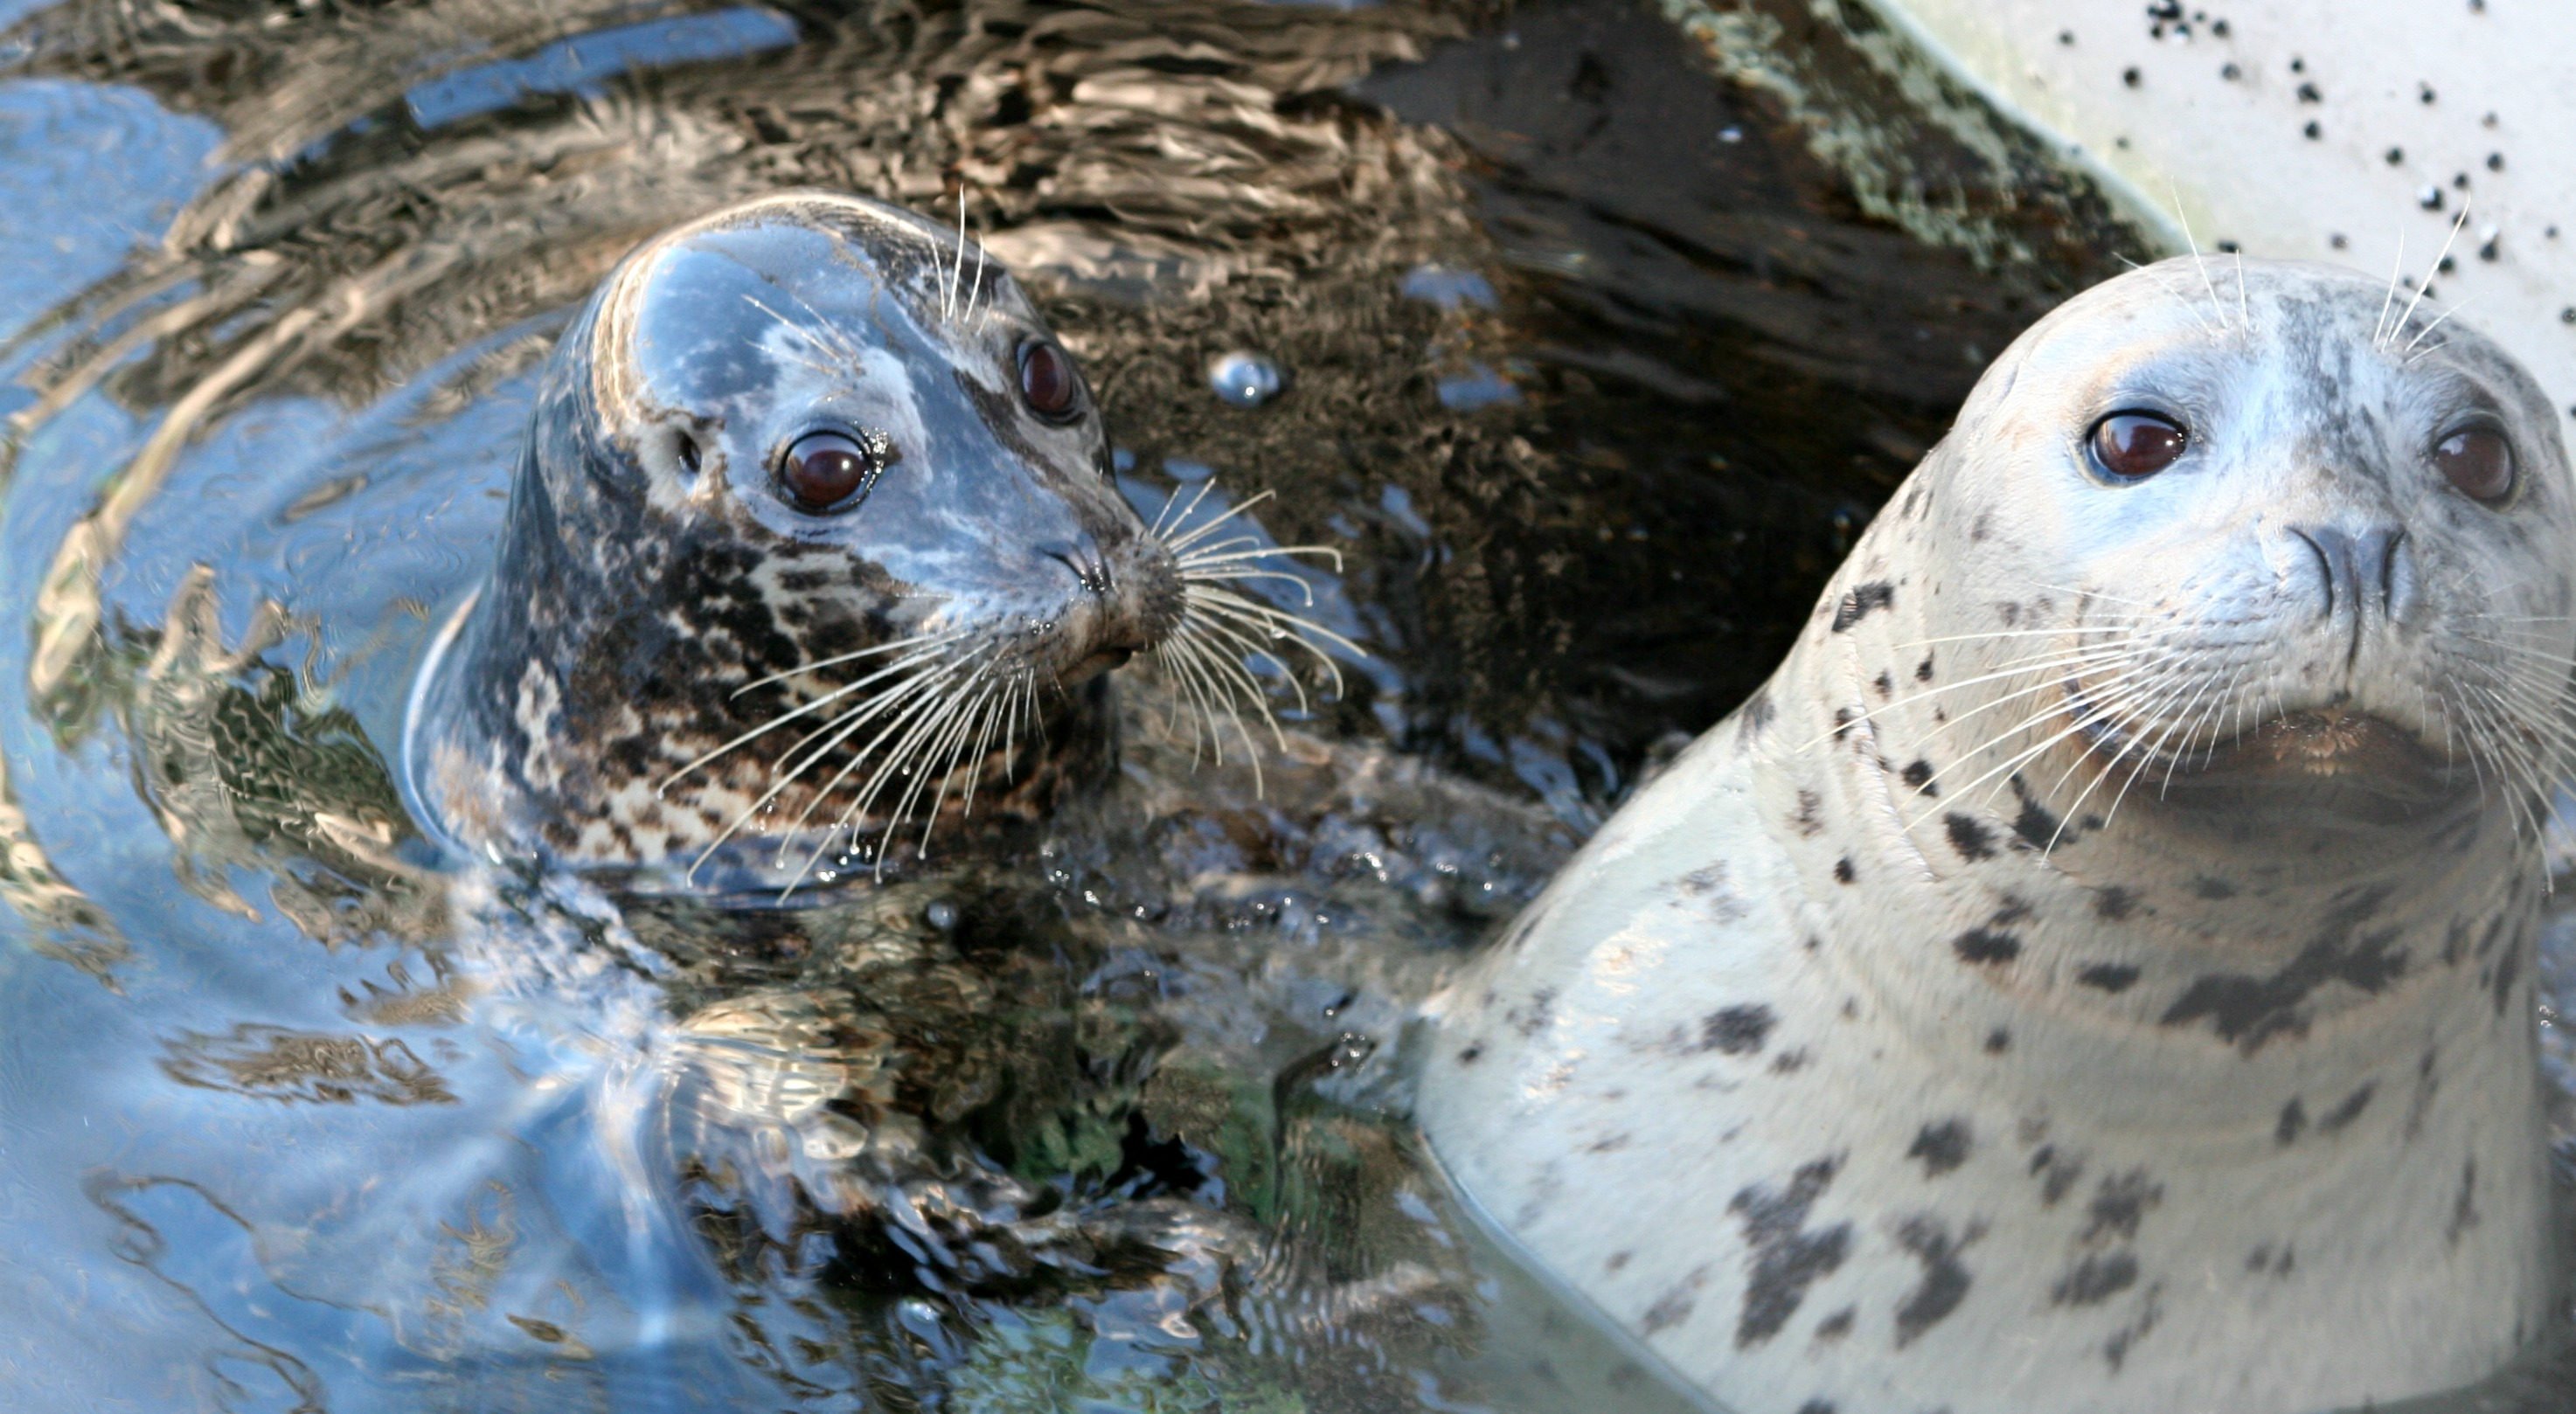 Construction alert: last chance to see our harbor seals for a while!